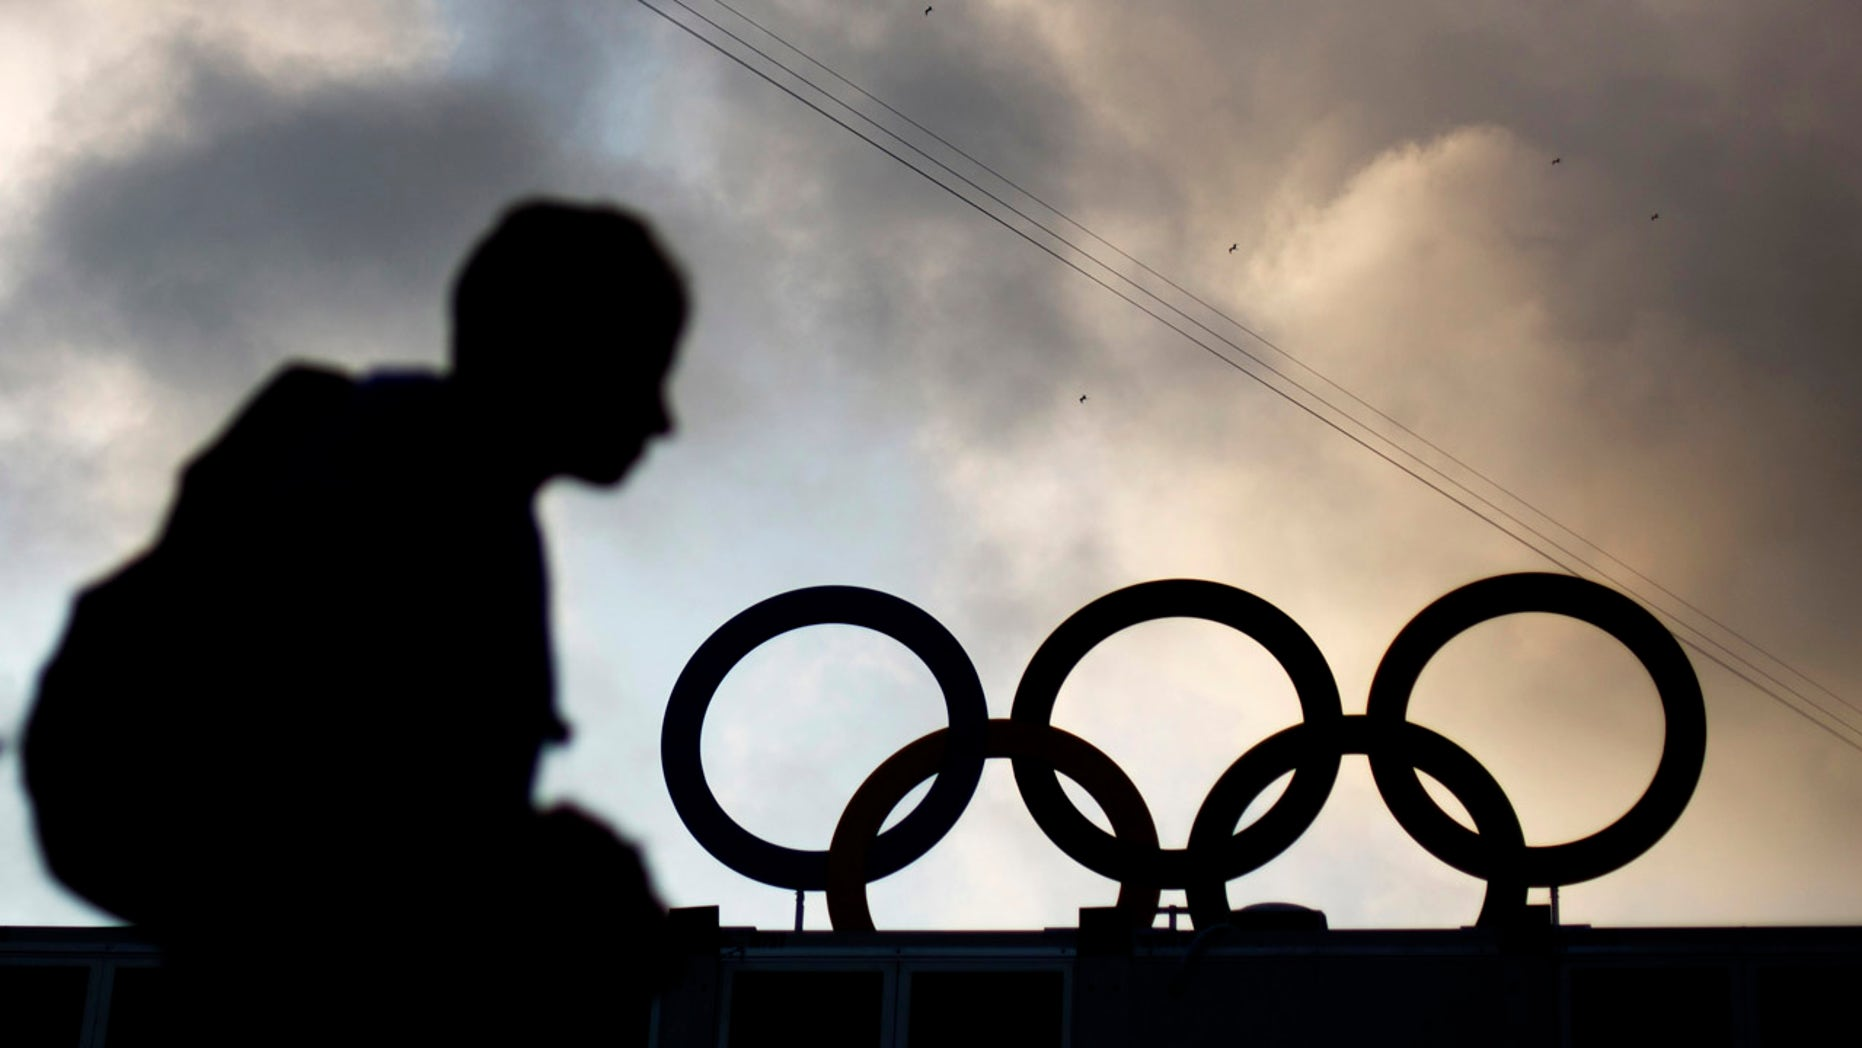 Aug. 2, 2016: The Olympic rings atop the beach volleyball venue stand against clouds moving in over Copacabana Beach ahead of the upcoming 2016 Summer Olympics in Rio de Janeiro, Brazil.